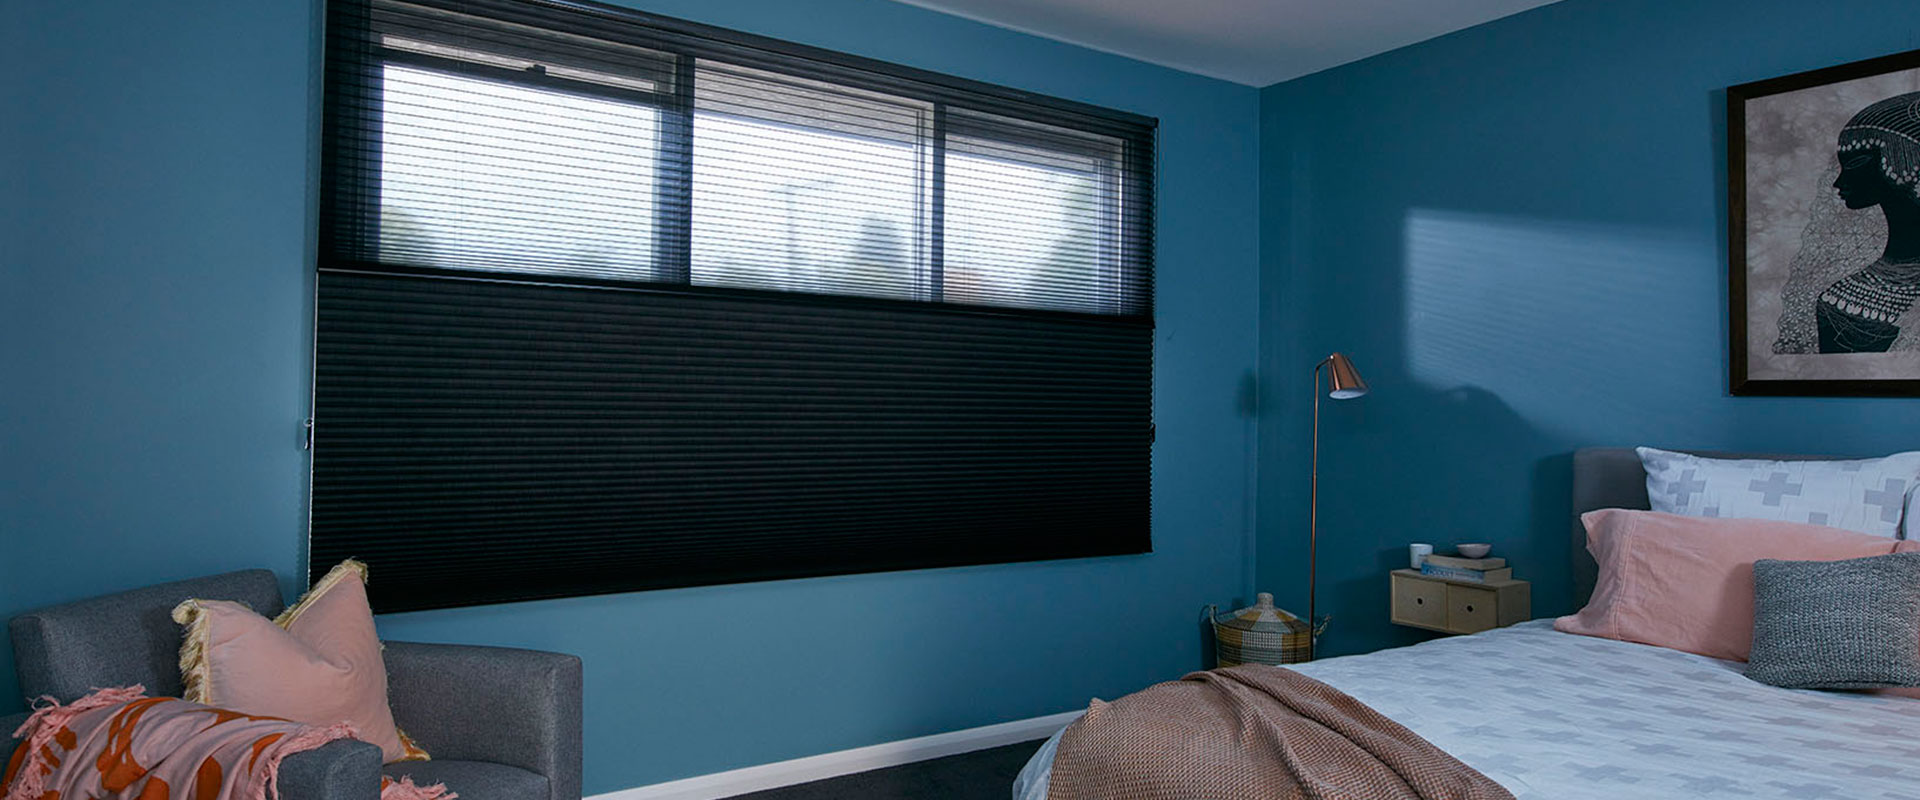 Forster Tuncurry Awnings & Blinds